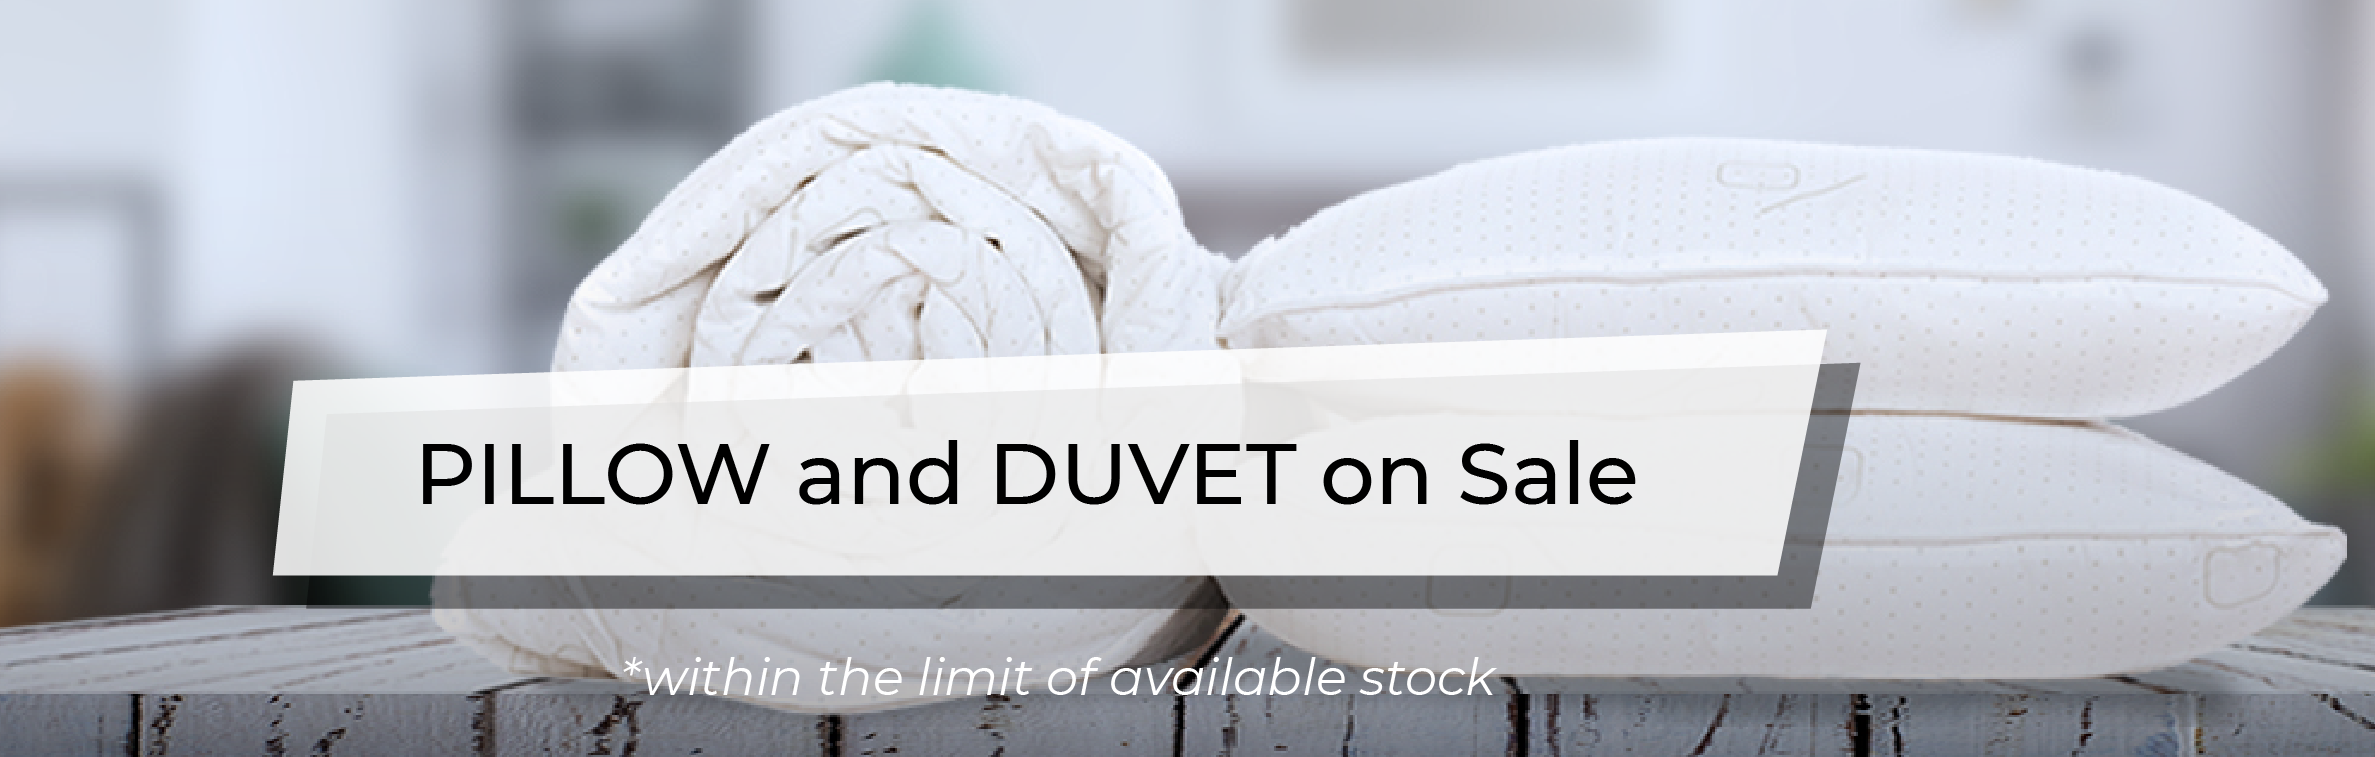 December Promotion - Pillow and Duvet